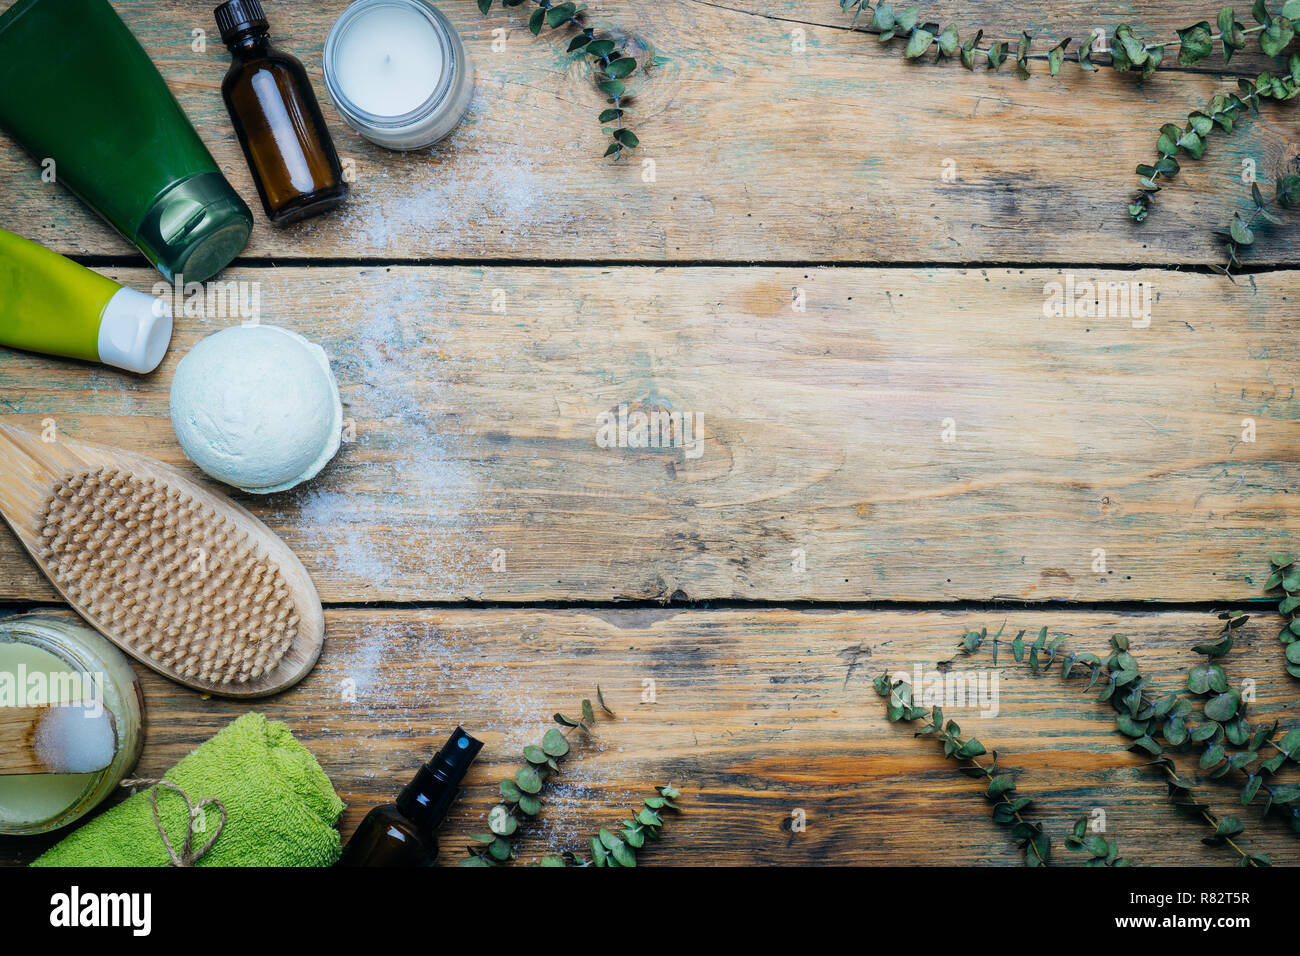 Eucalyptus Spa Concept Eucalyptus Oil Cosmetics Bath Accessories Massage And Relaxation Spa Background On Wooden Table Stock Photo Alamy